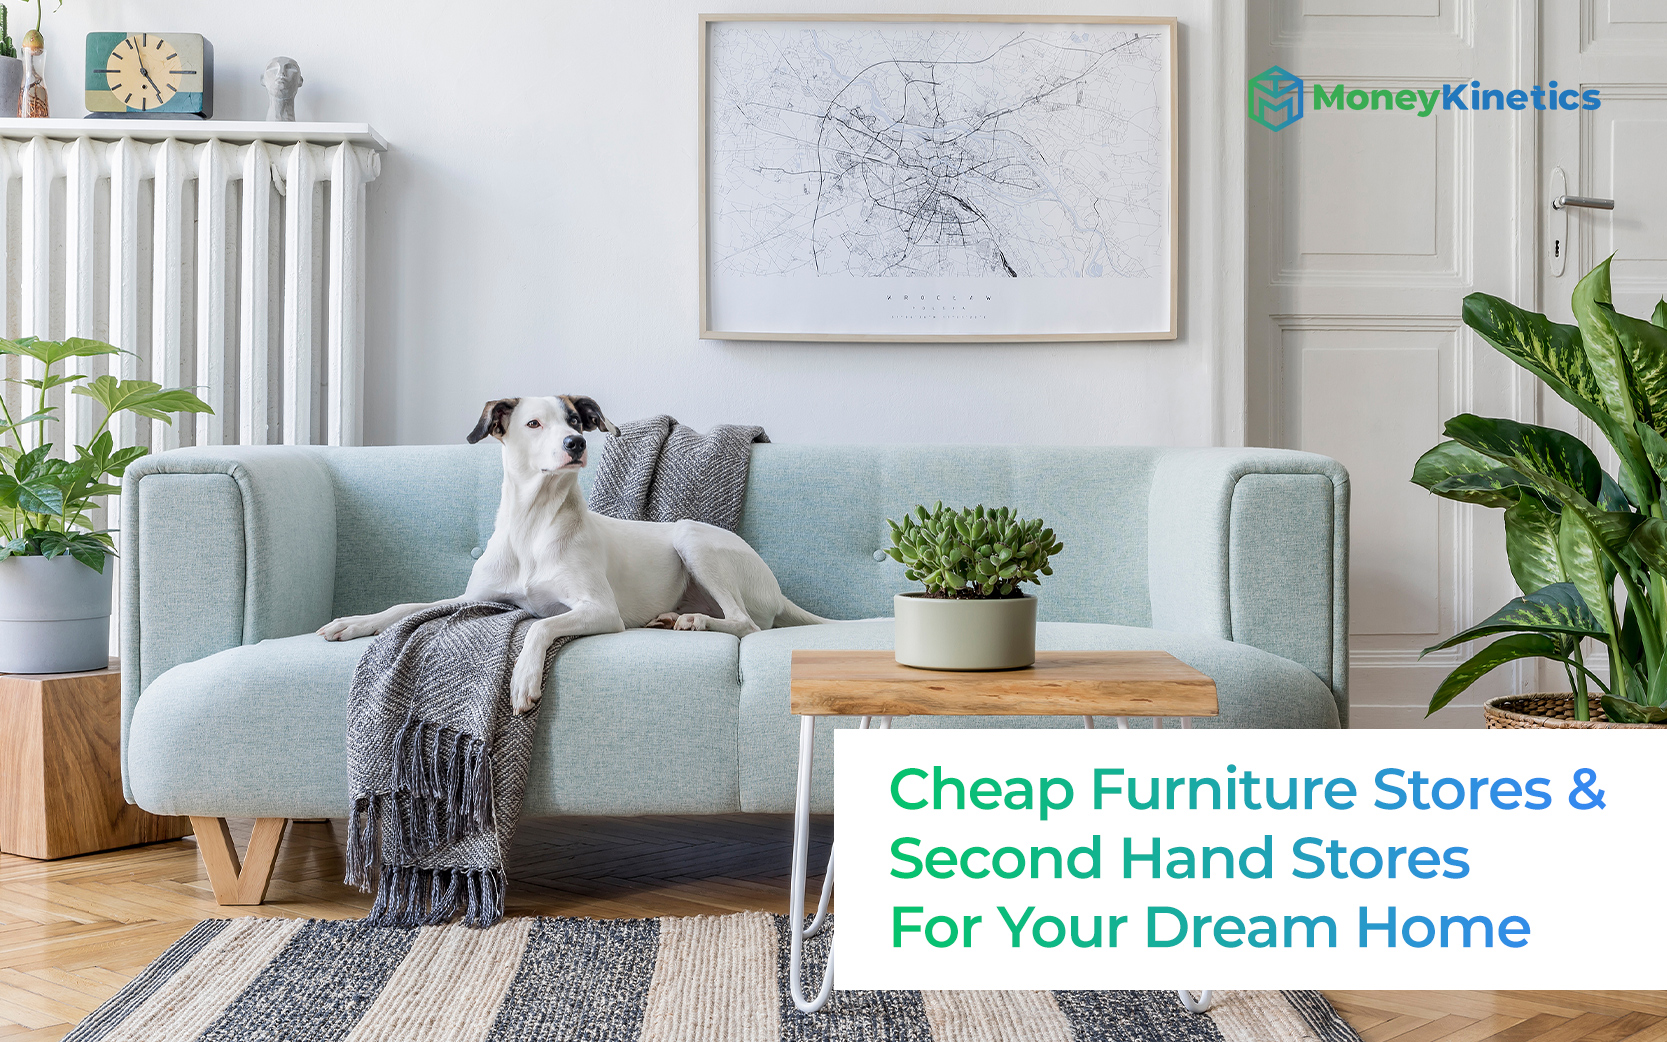 10 Cheap Furniture Stores & Second Hand Stores to Build your Dream Home for 2021